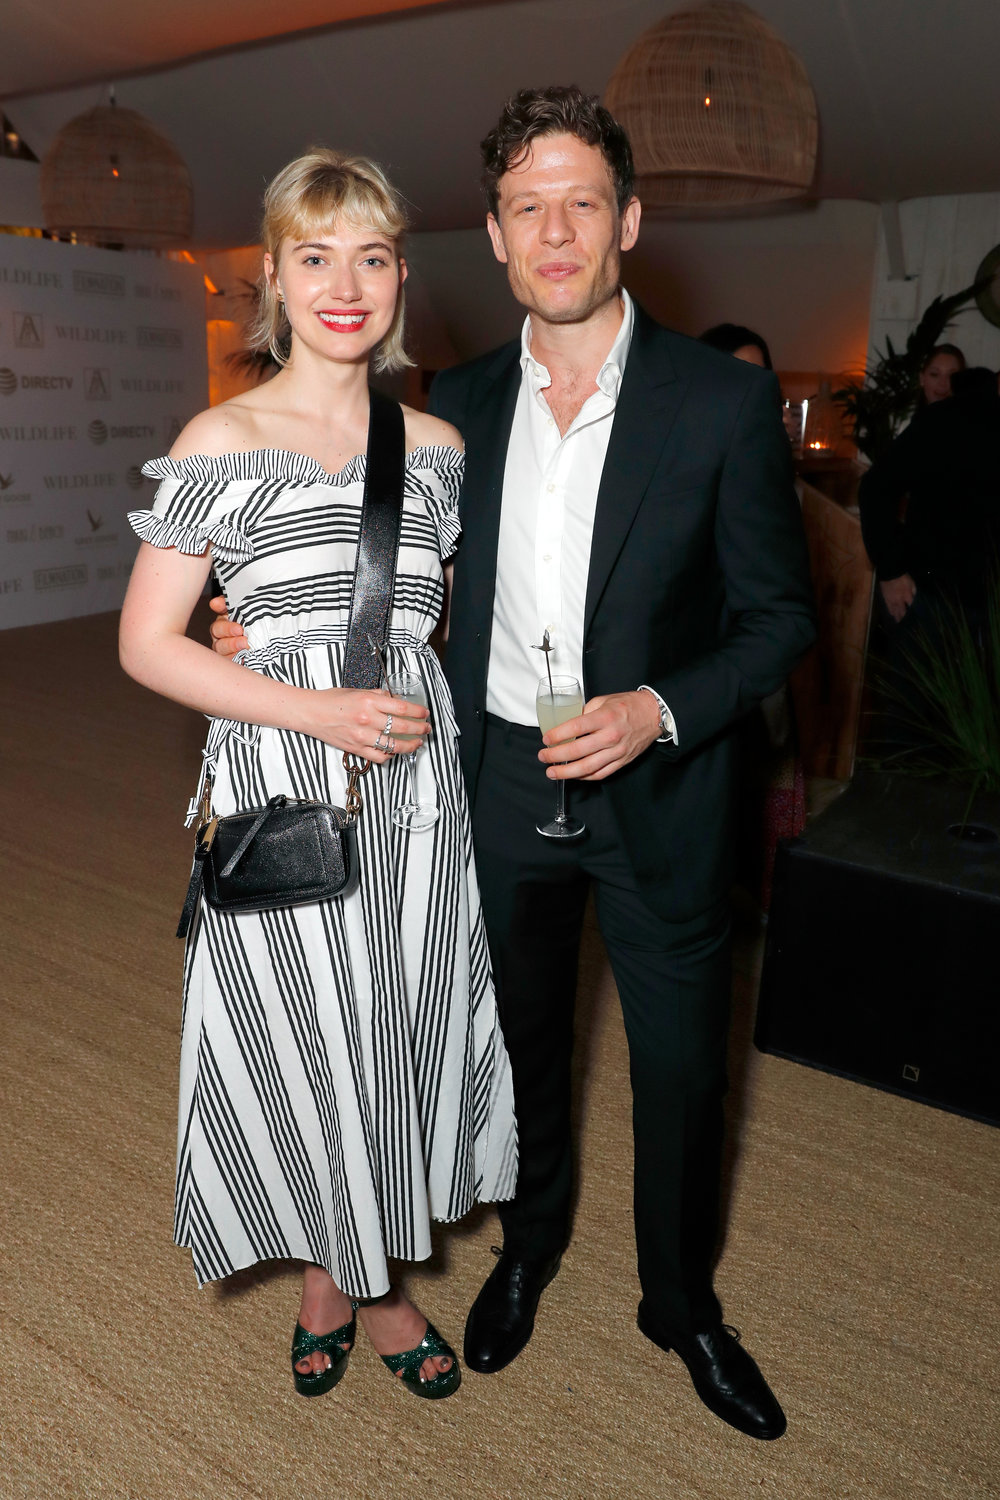 Imogen Poots and James Norton Toast